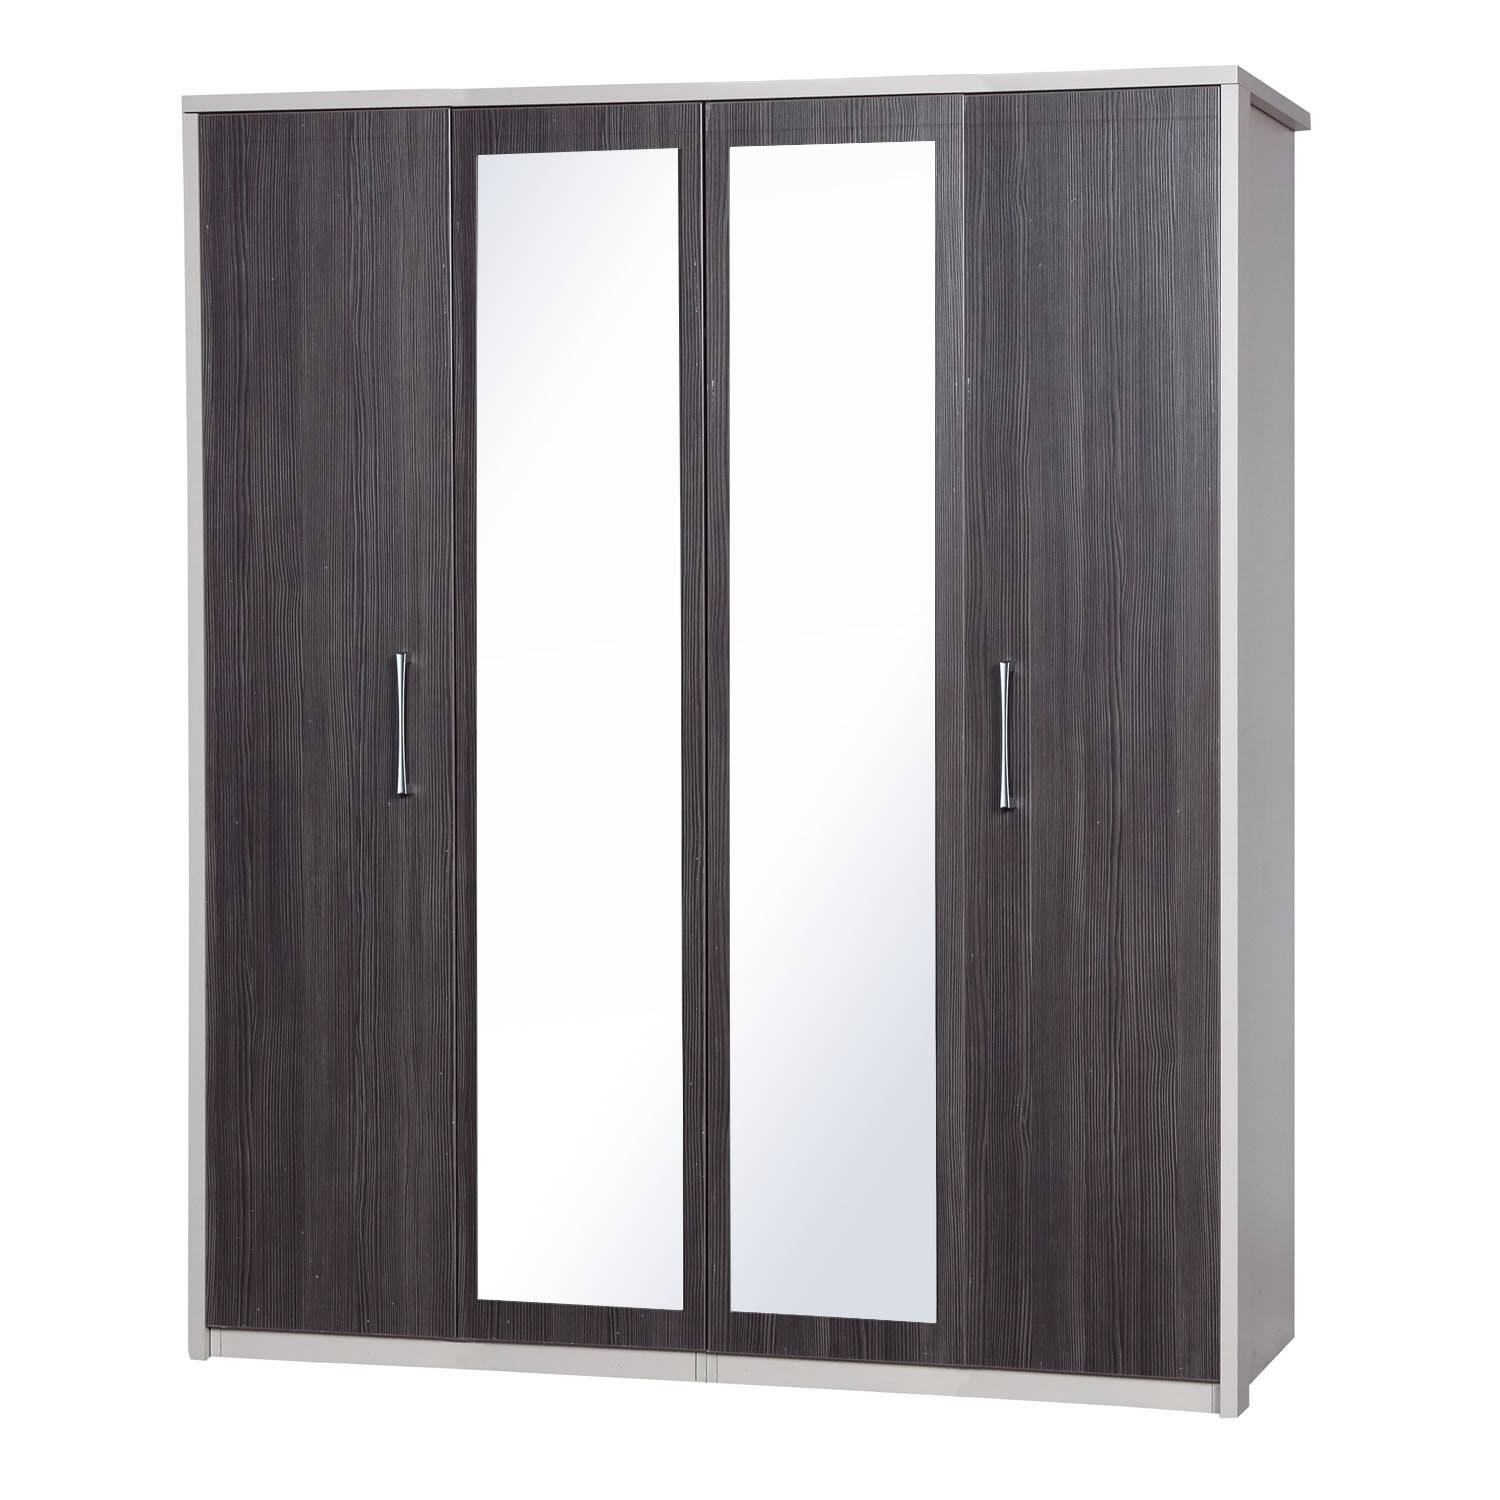 Avola Grey 4 Door Wardrobe With Mirror – Next Day Delivery Avola with 4 Door Wardrobes (Image 3 of 15)